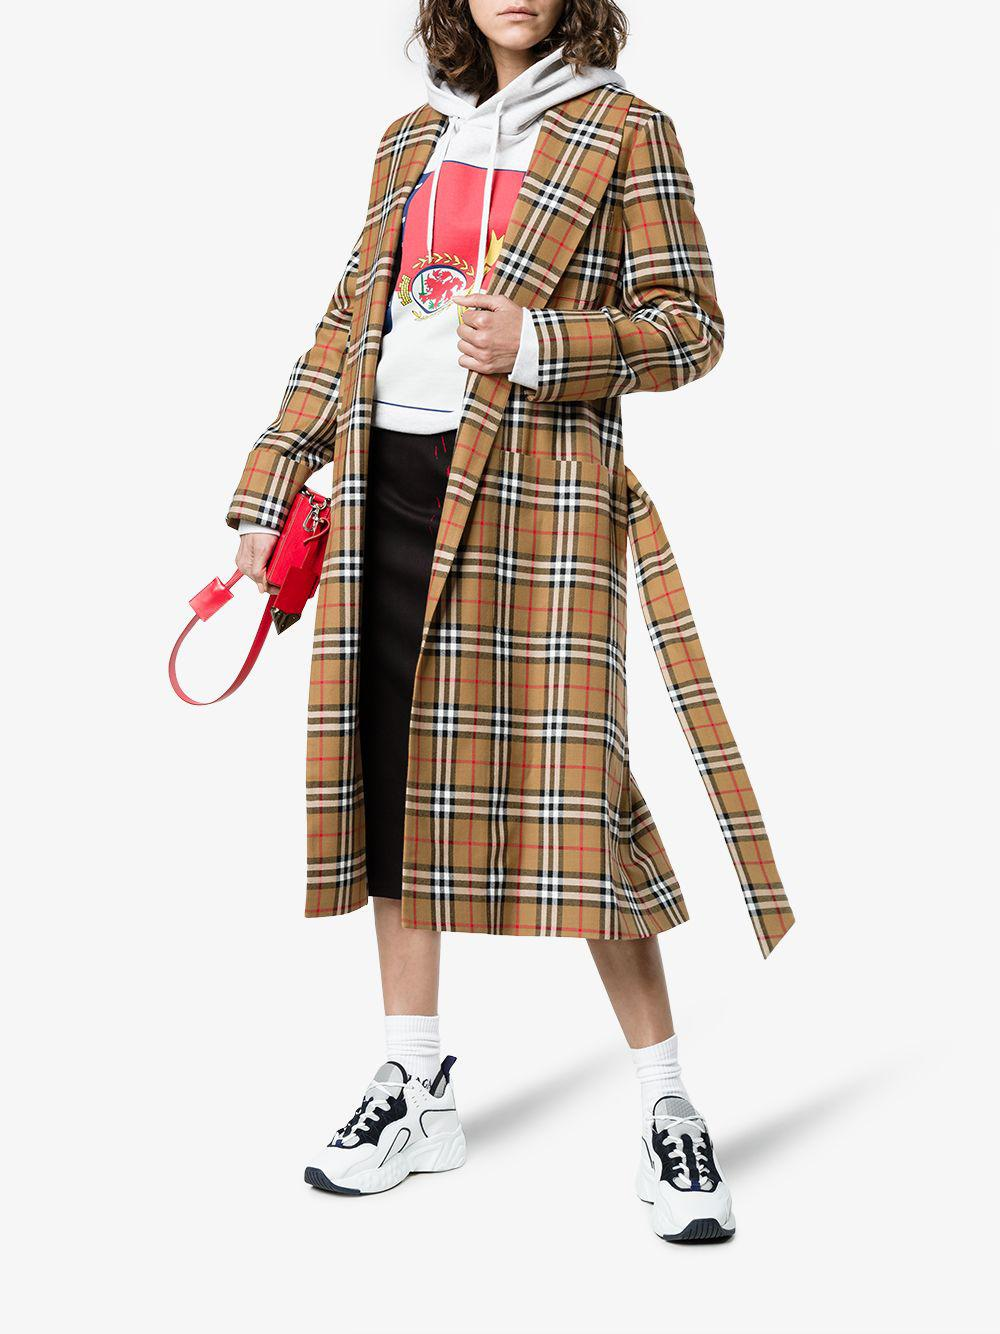 Lyst - Burberry Reissued Vintage Check Dressing Gown Coat